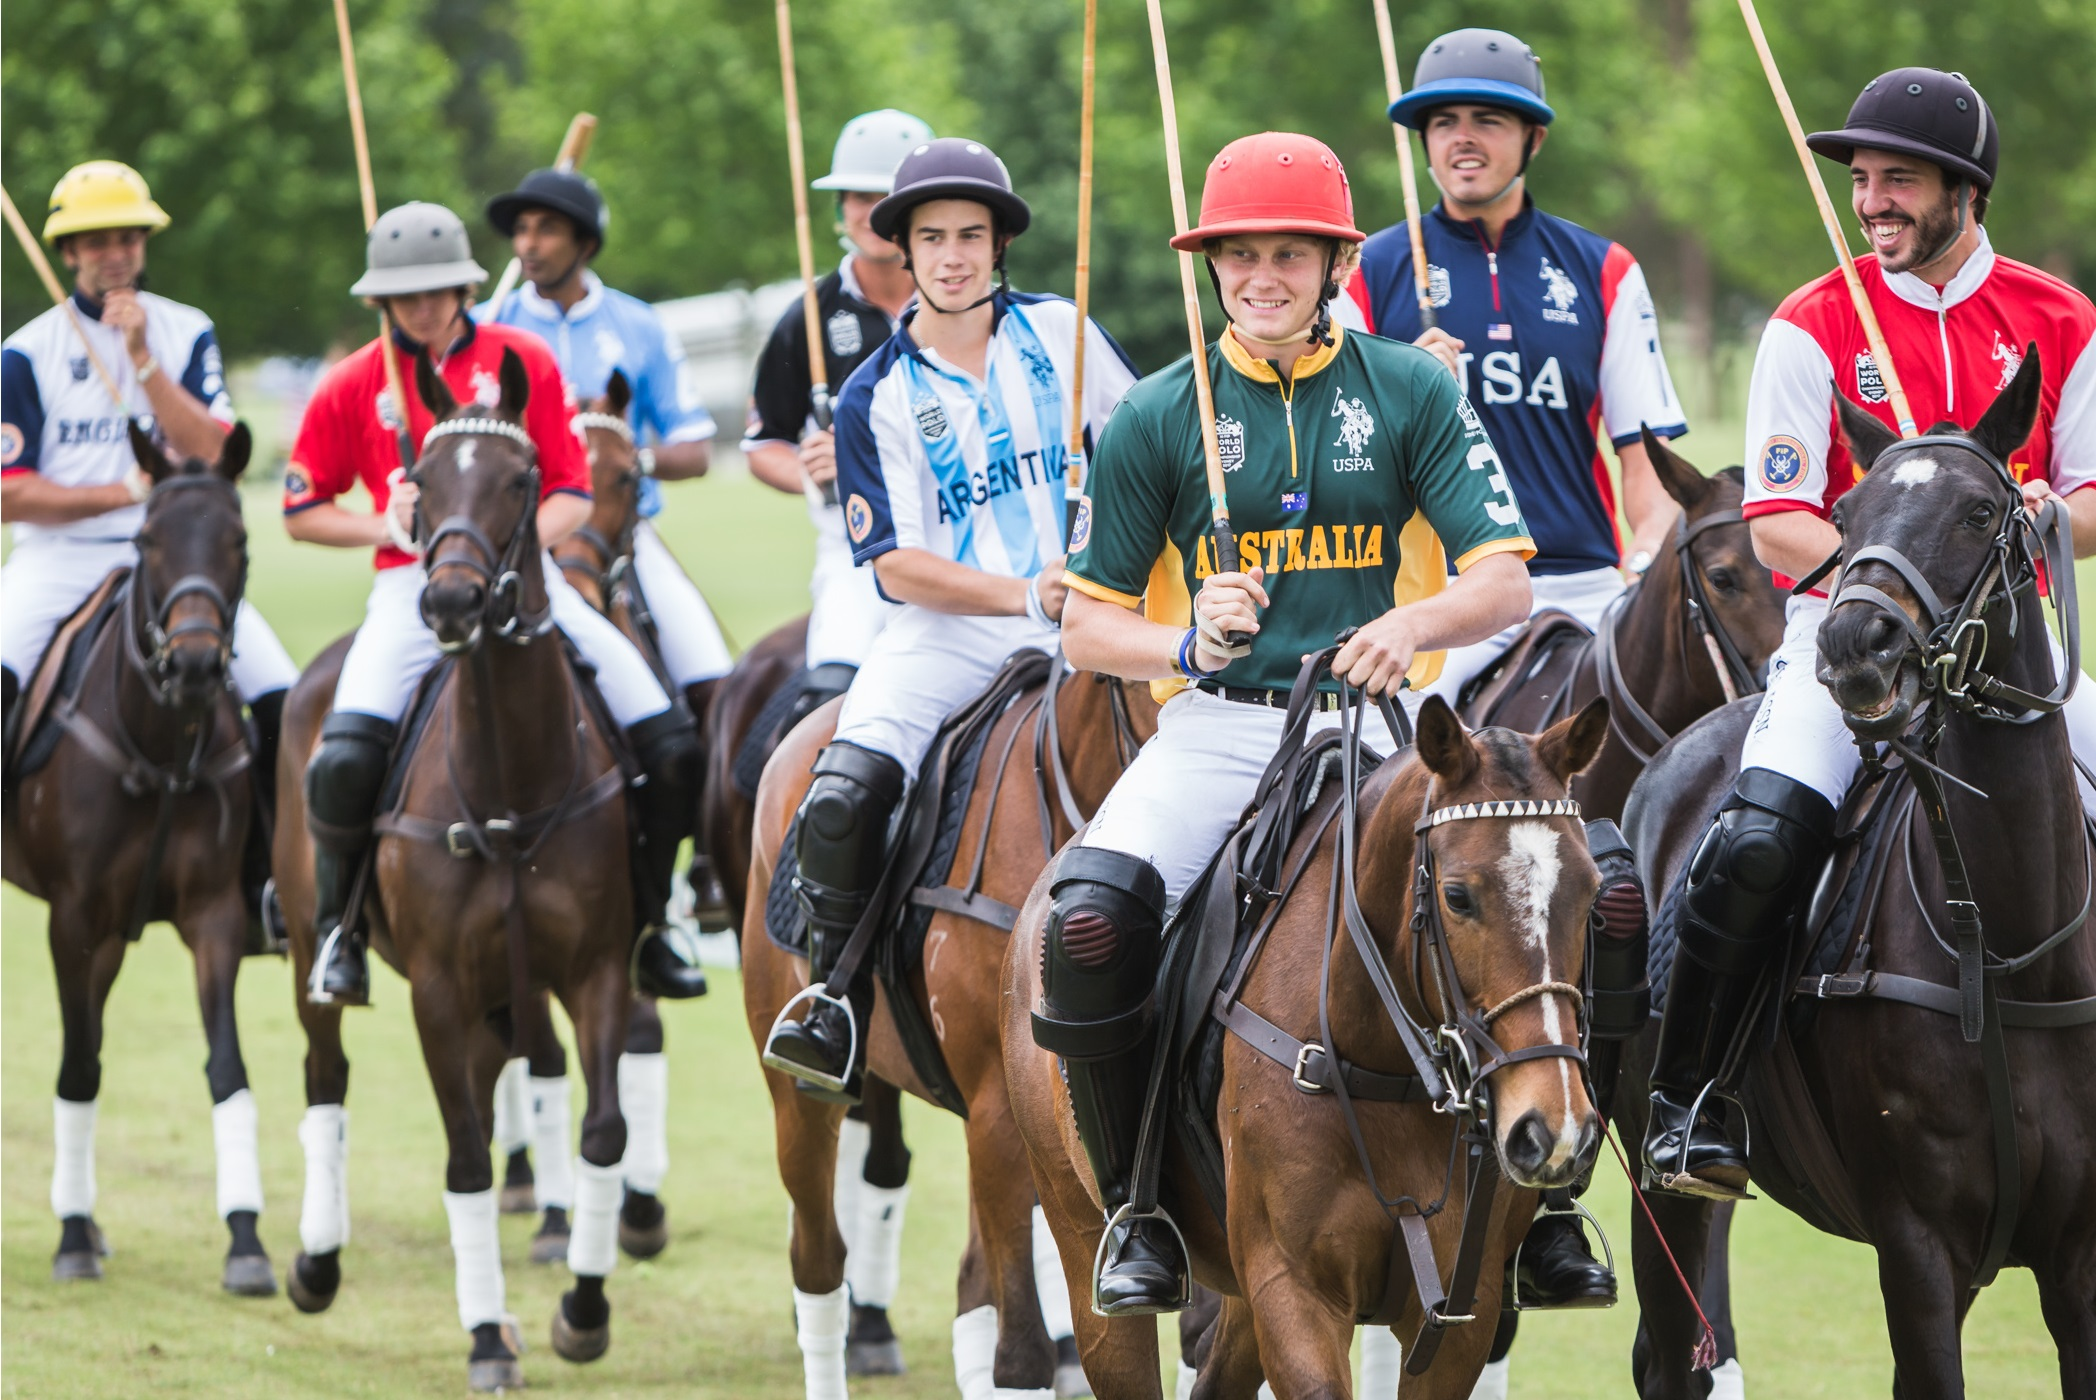 2017 WORLD POLO CHAMPIONSHIPS